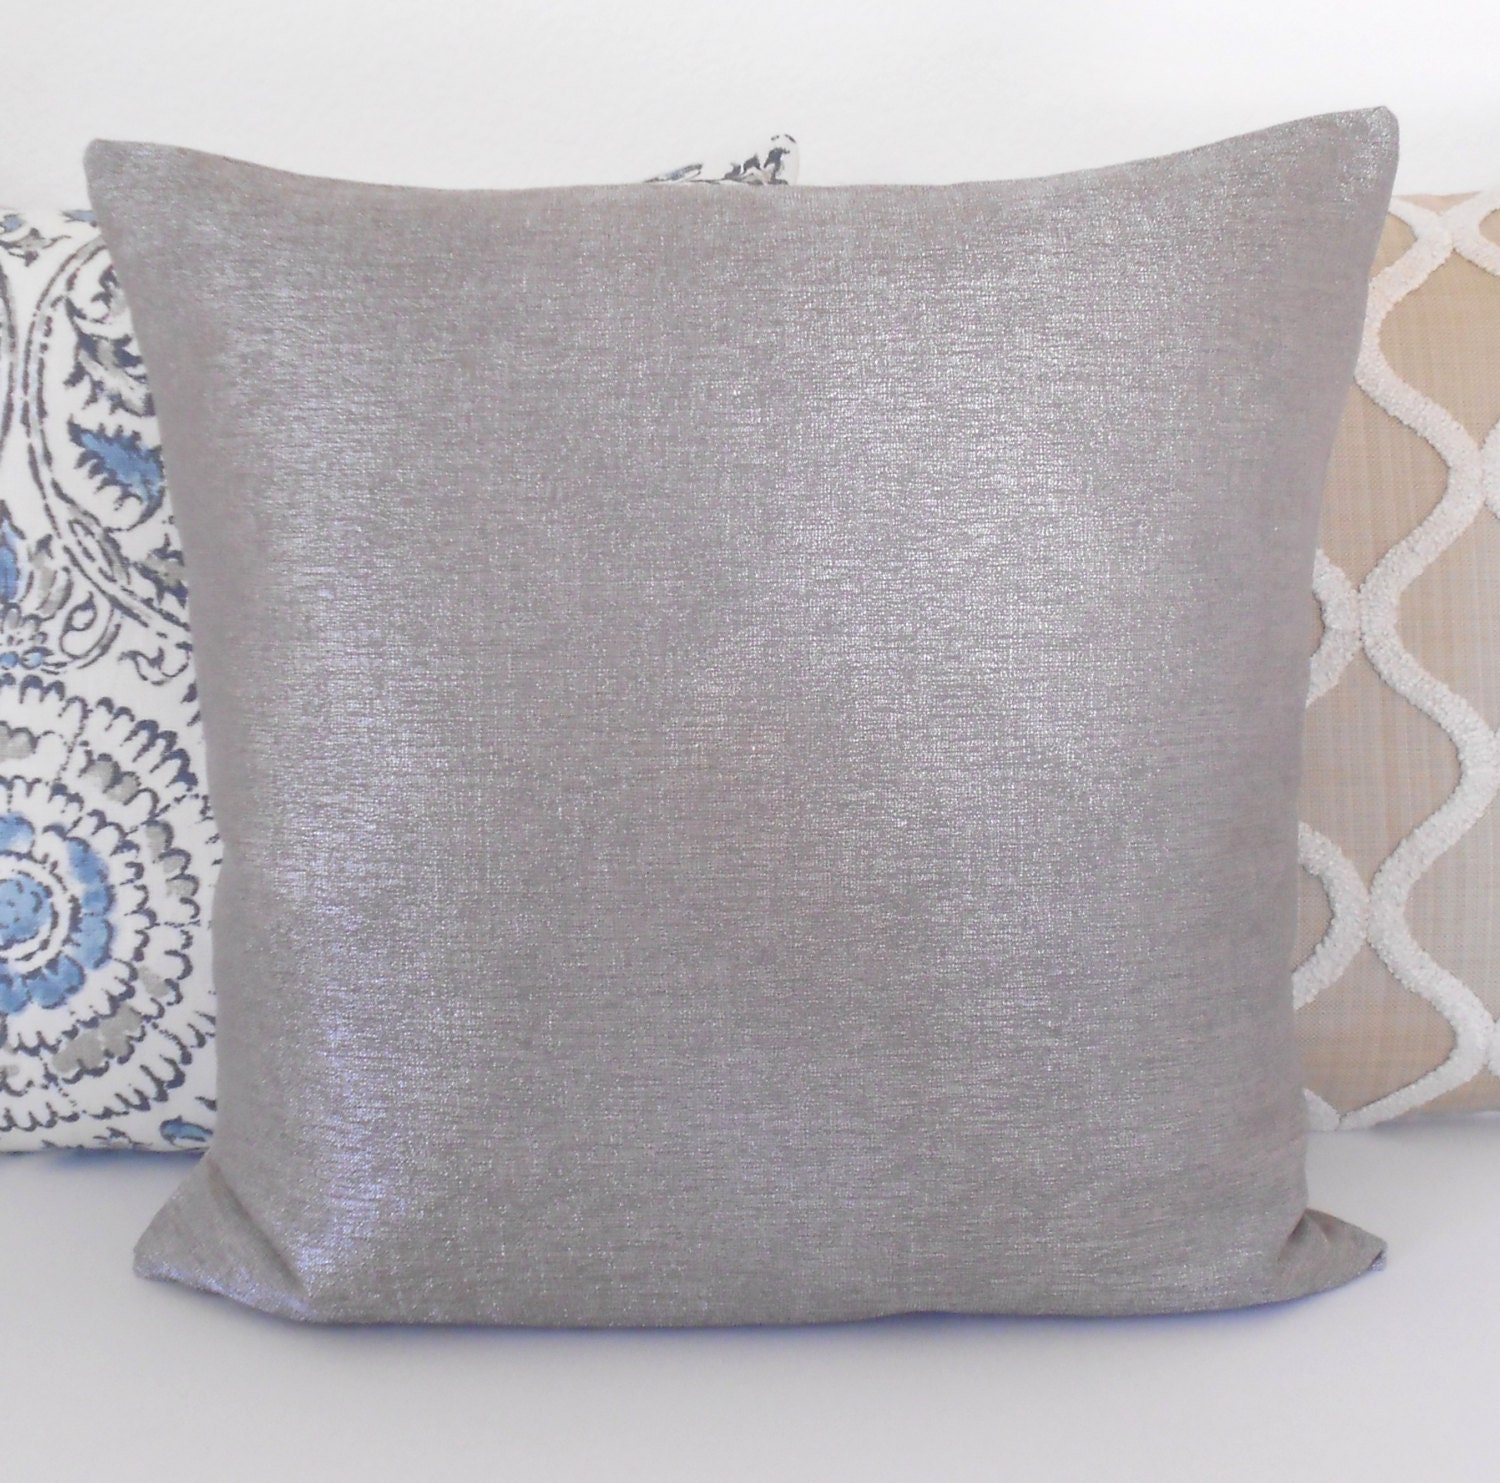 Clearance Silver solid metallic decorative pillow cover